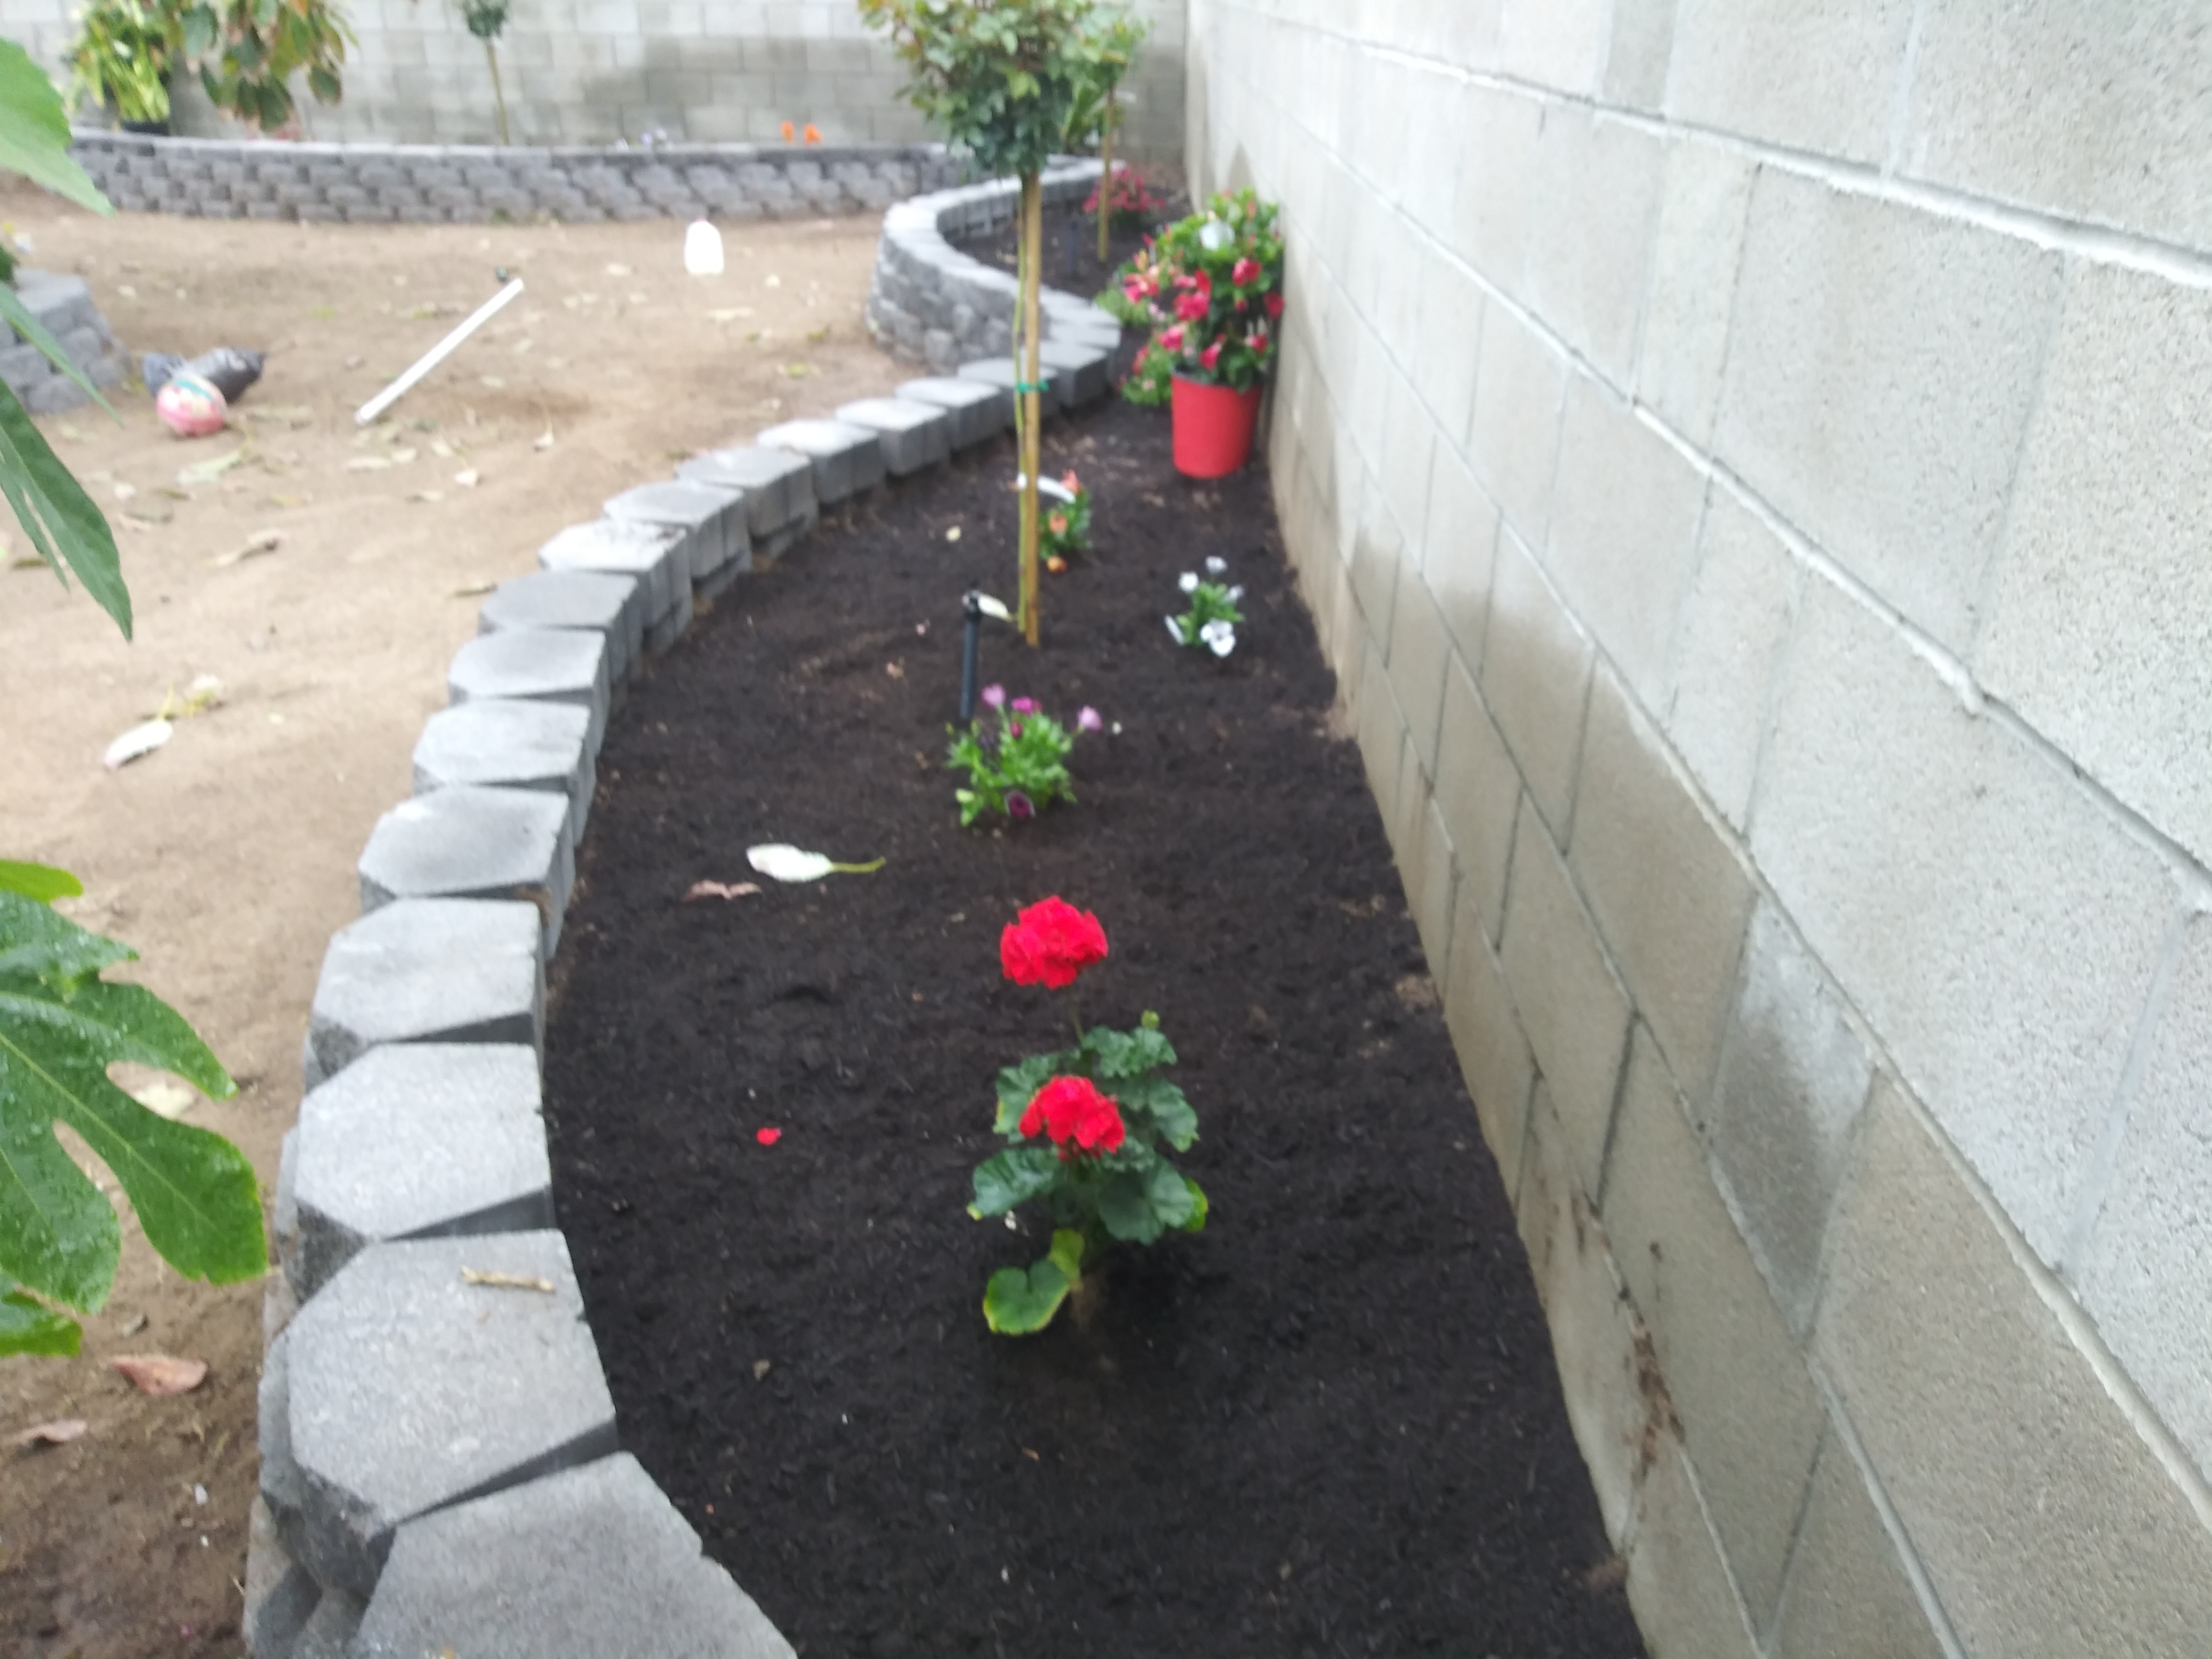 Construction of flower beds.